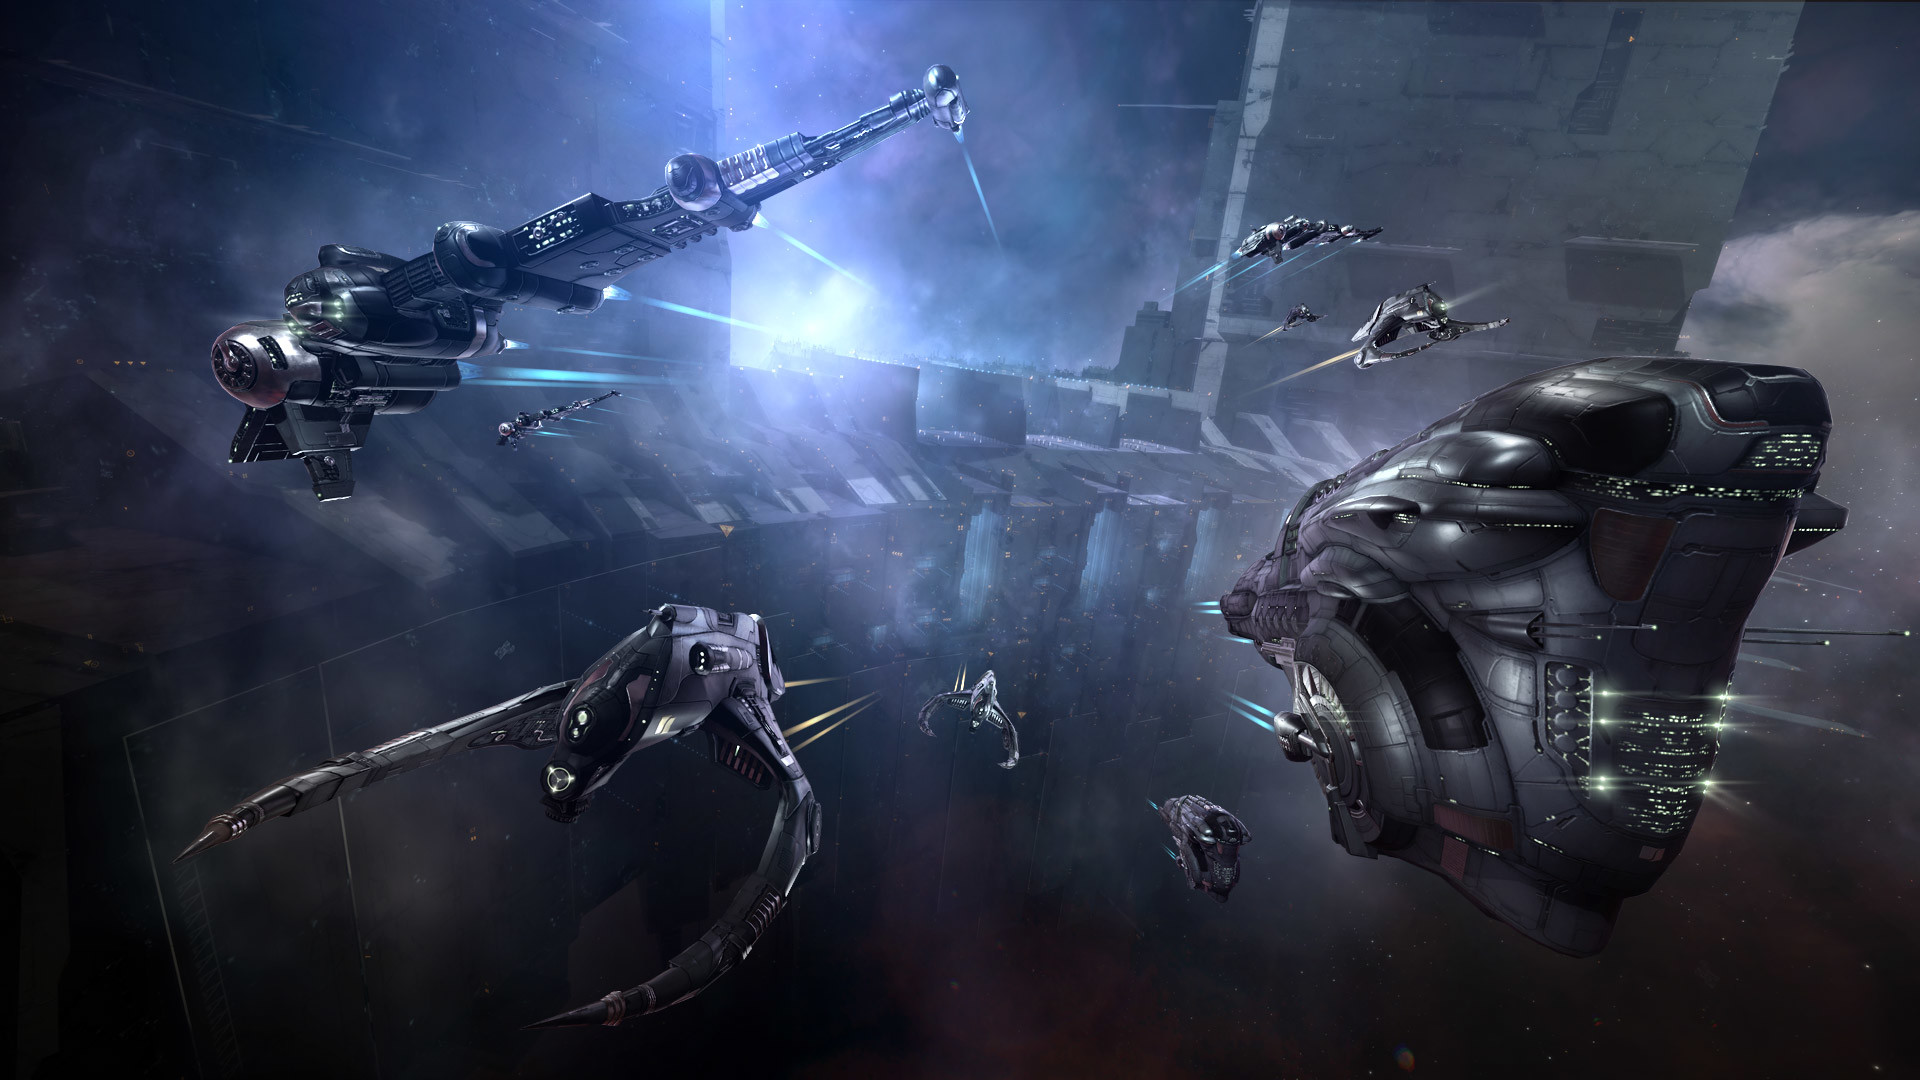 Shadow of the Serpent EVE Online